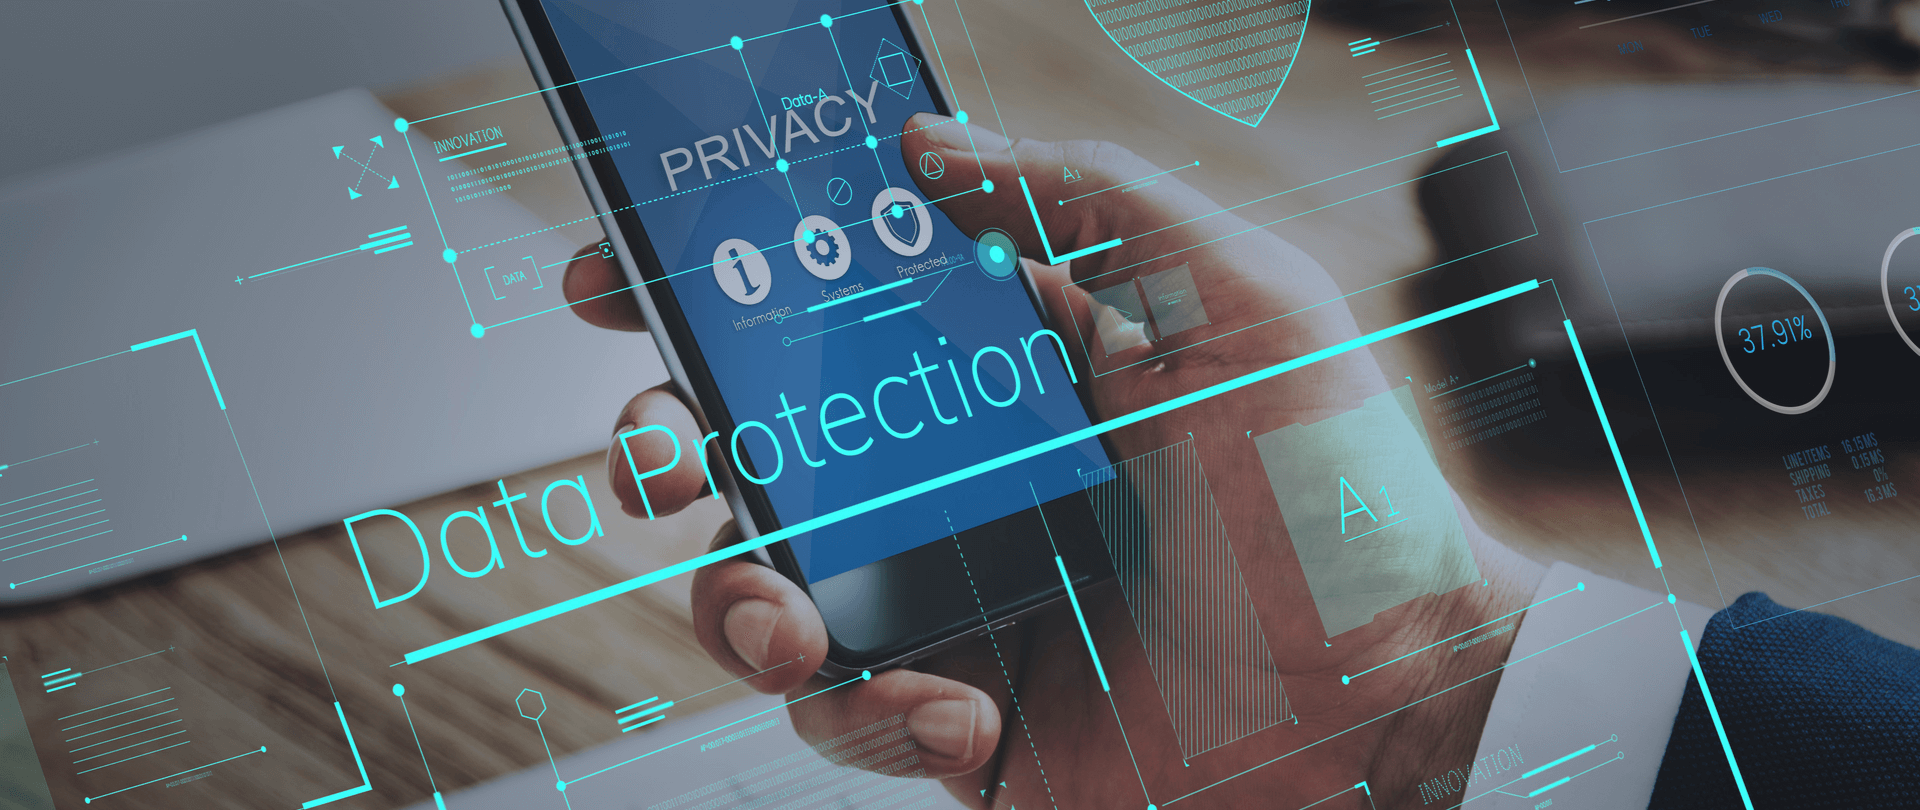 Harnessing big data – While protecting user data privacy through unique identifiers